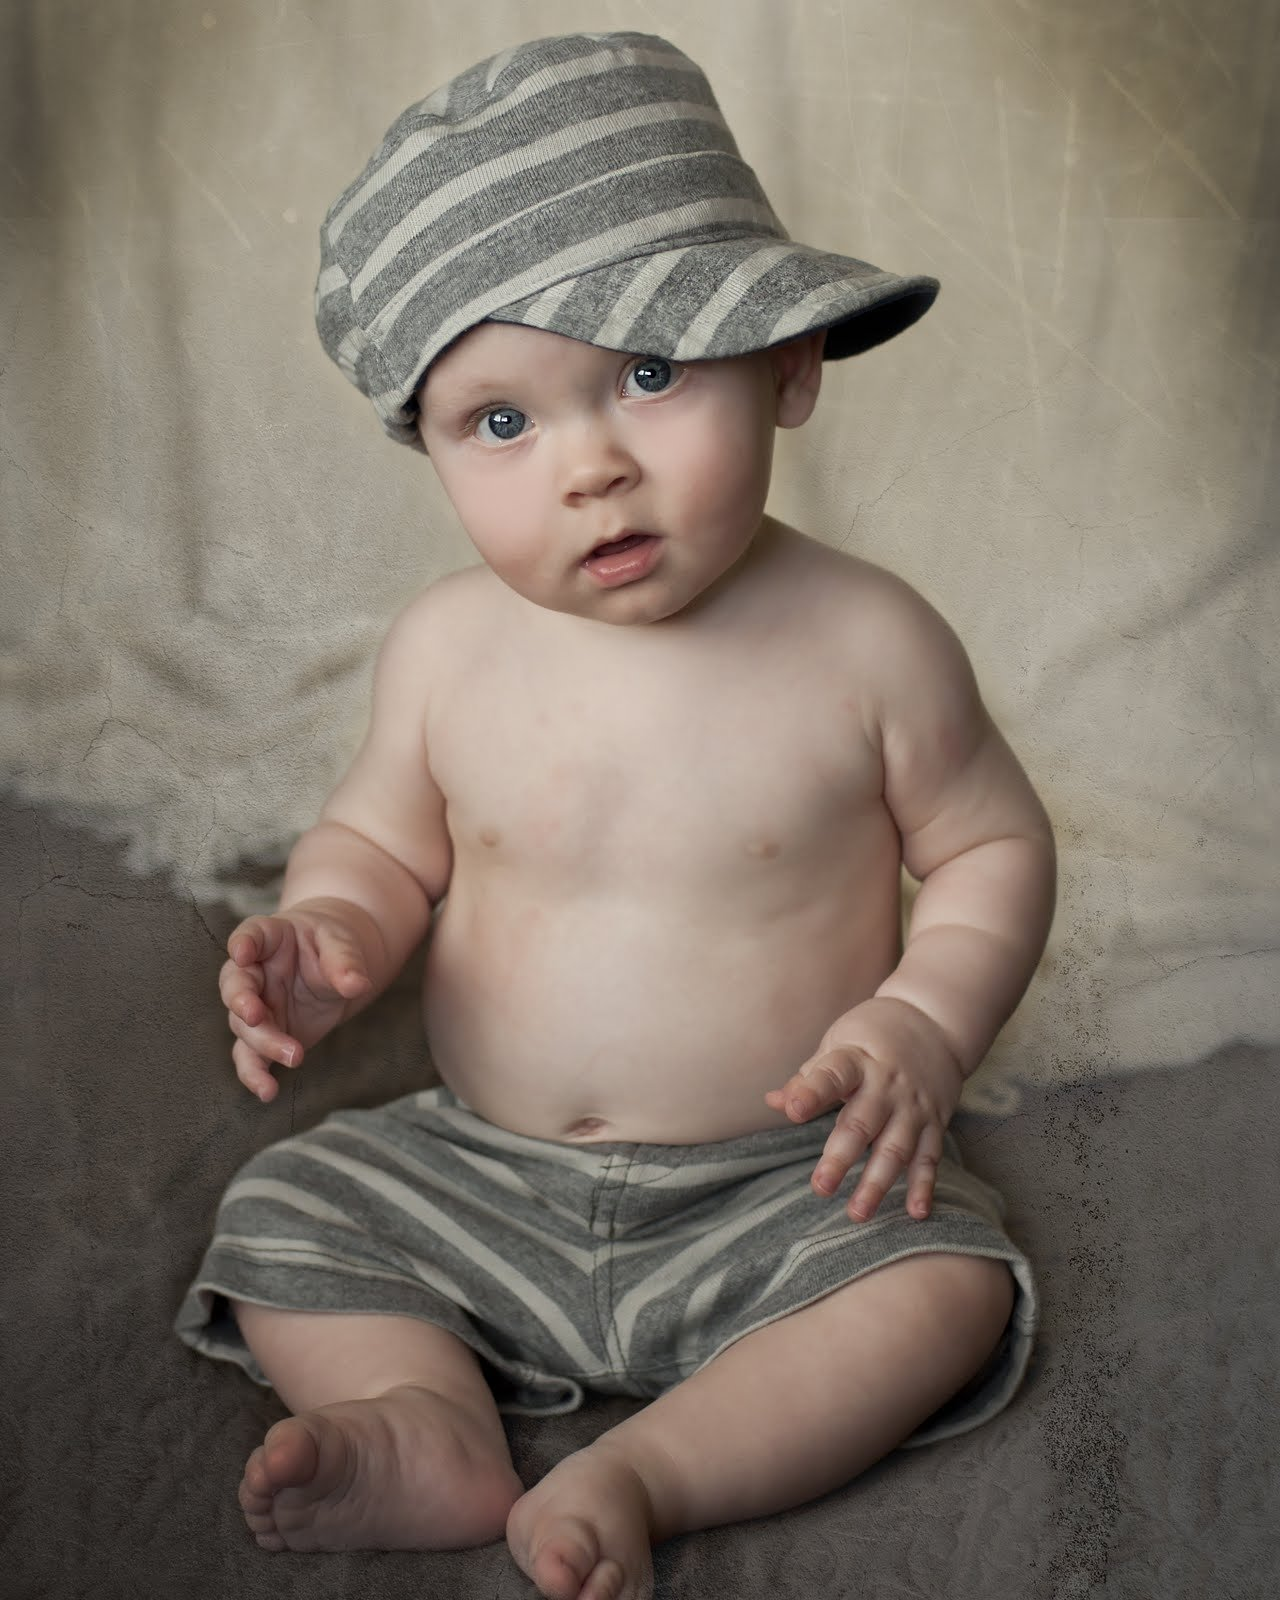 10 Lovely 3 Month Old Baby Picture Ideas beautiful 3 month old baby boy photo ideas compilation photo and 2020